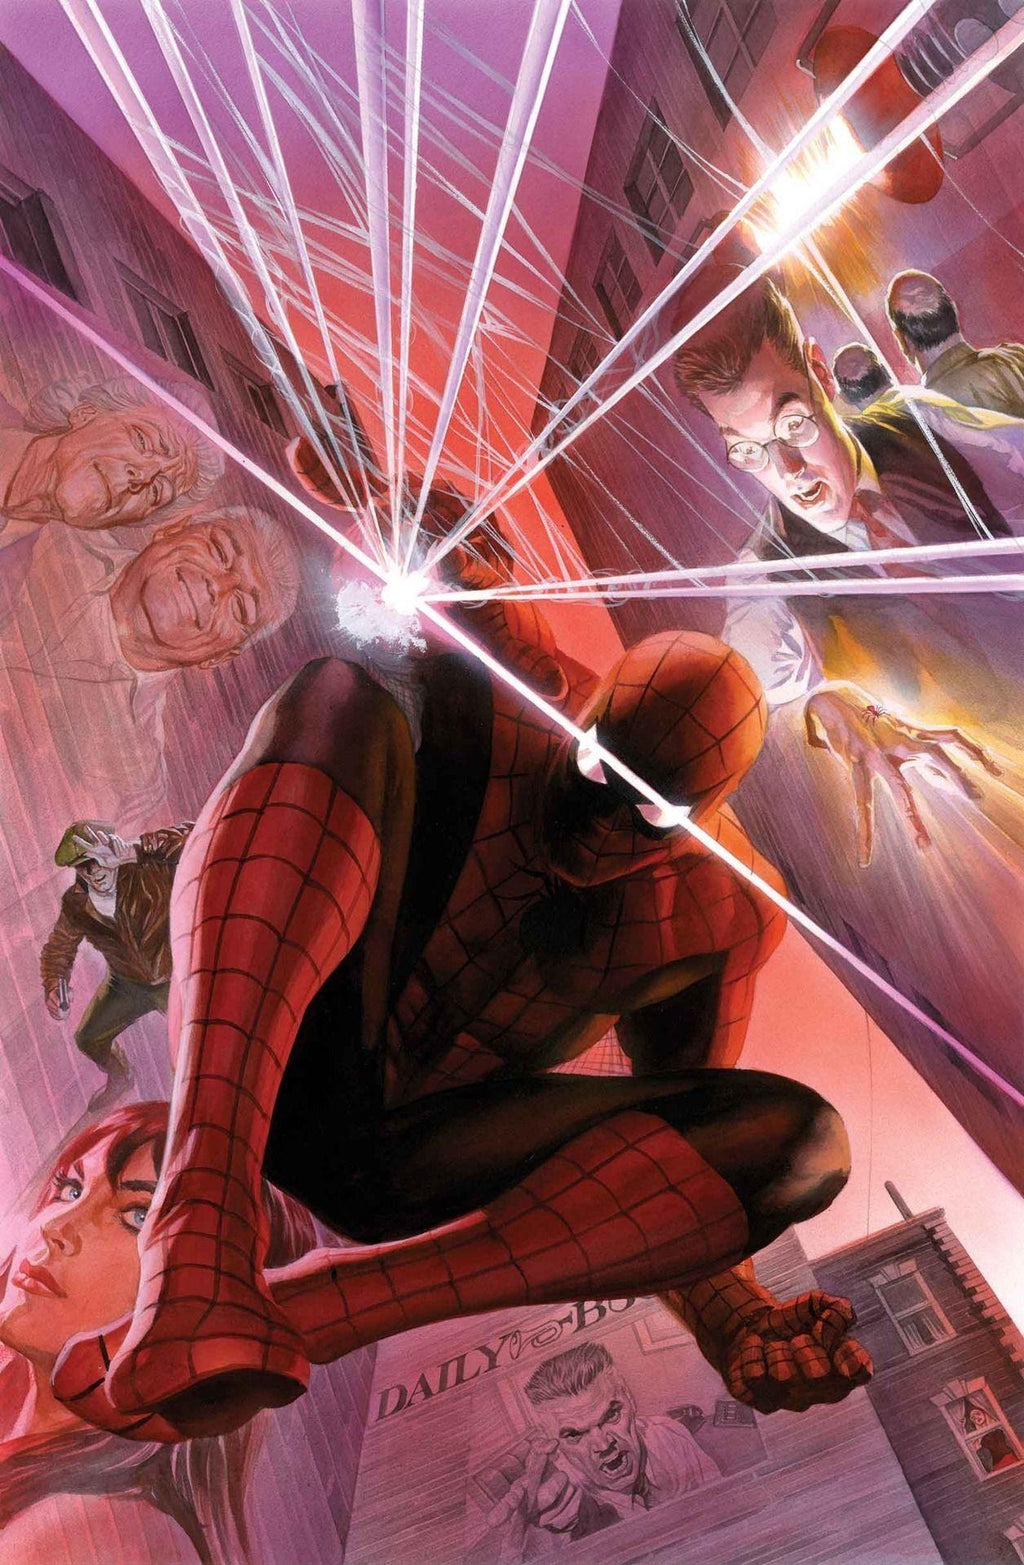 WITH GREAT POWER BY ARTIST ALEX ROSS Giclée On Canvas MARVEL FINE ART